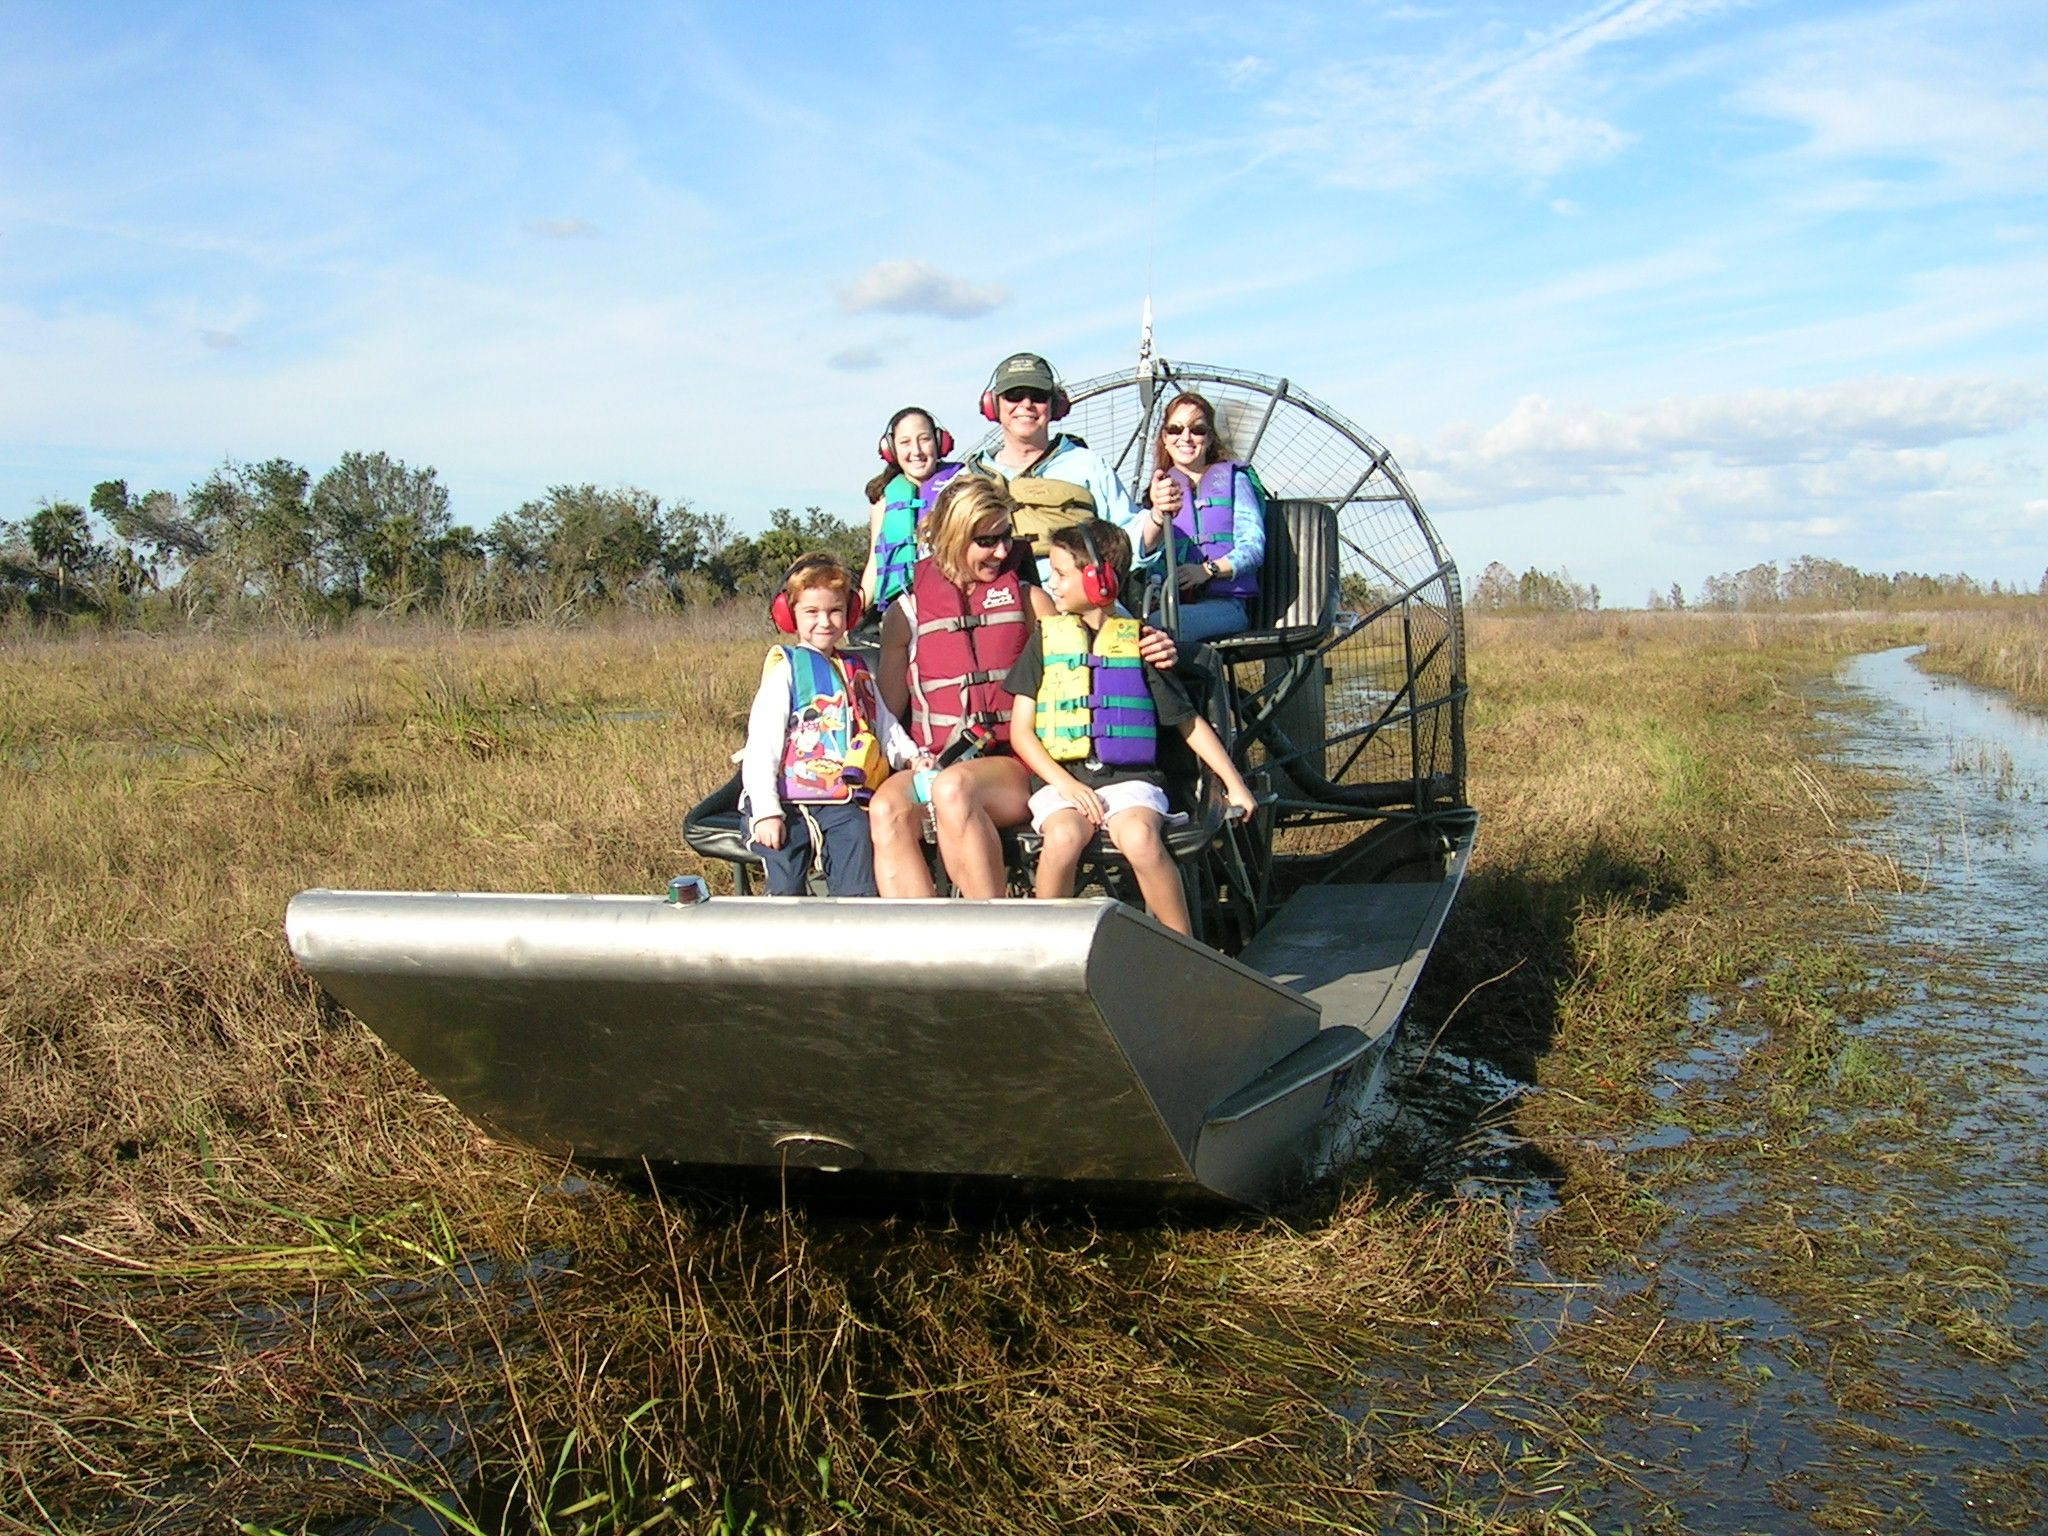 Boggy creek airboat rides airboat rides bass fishing